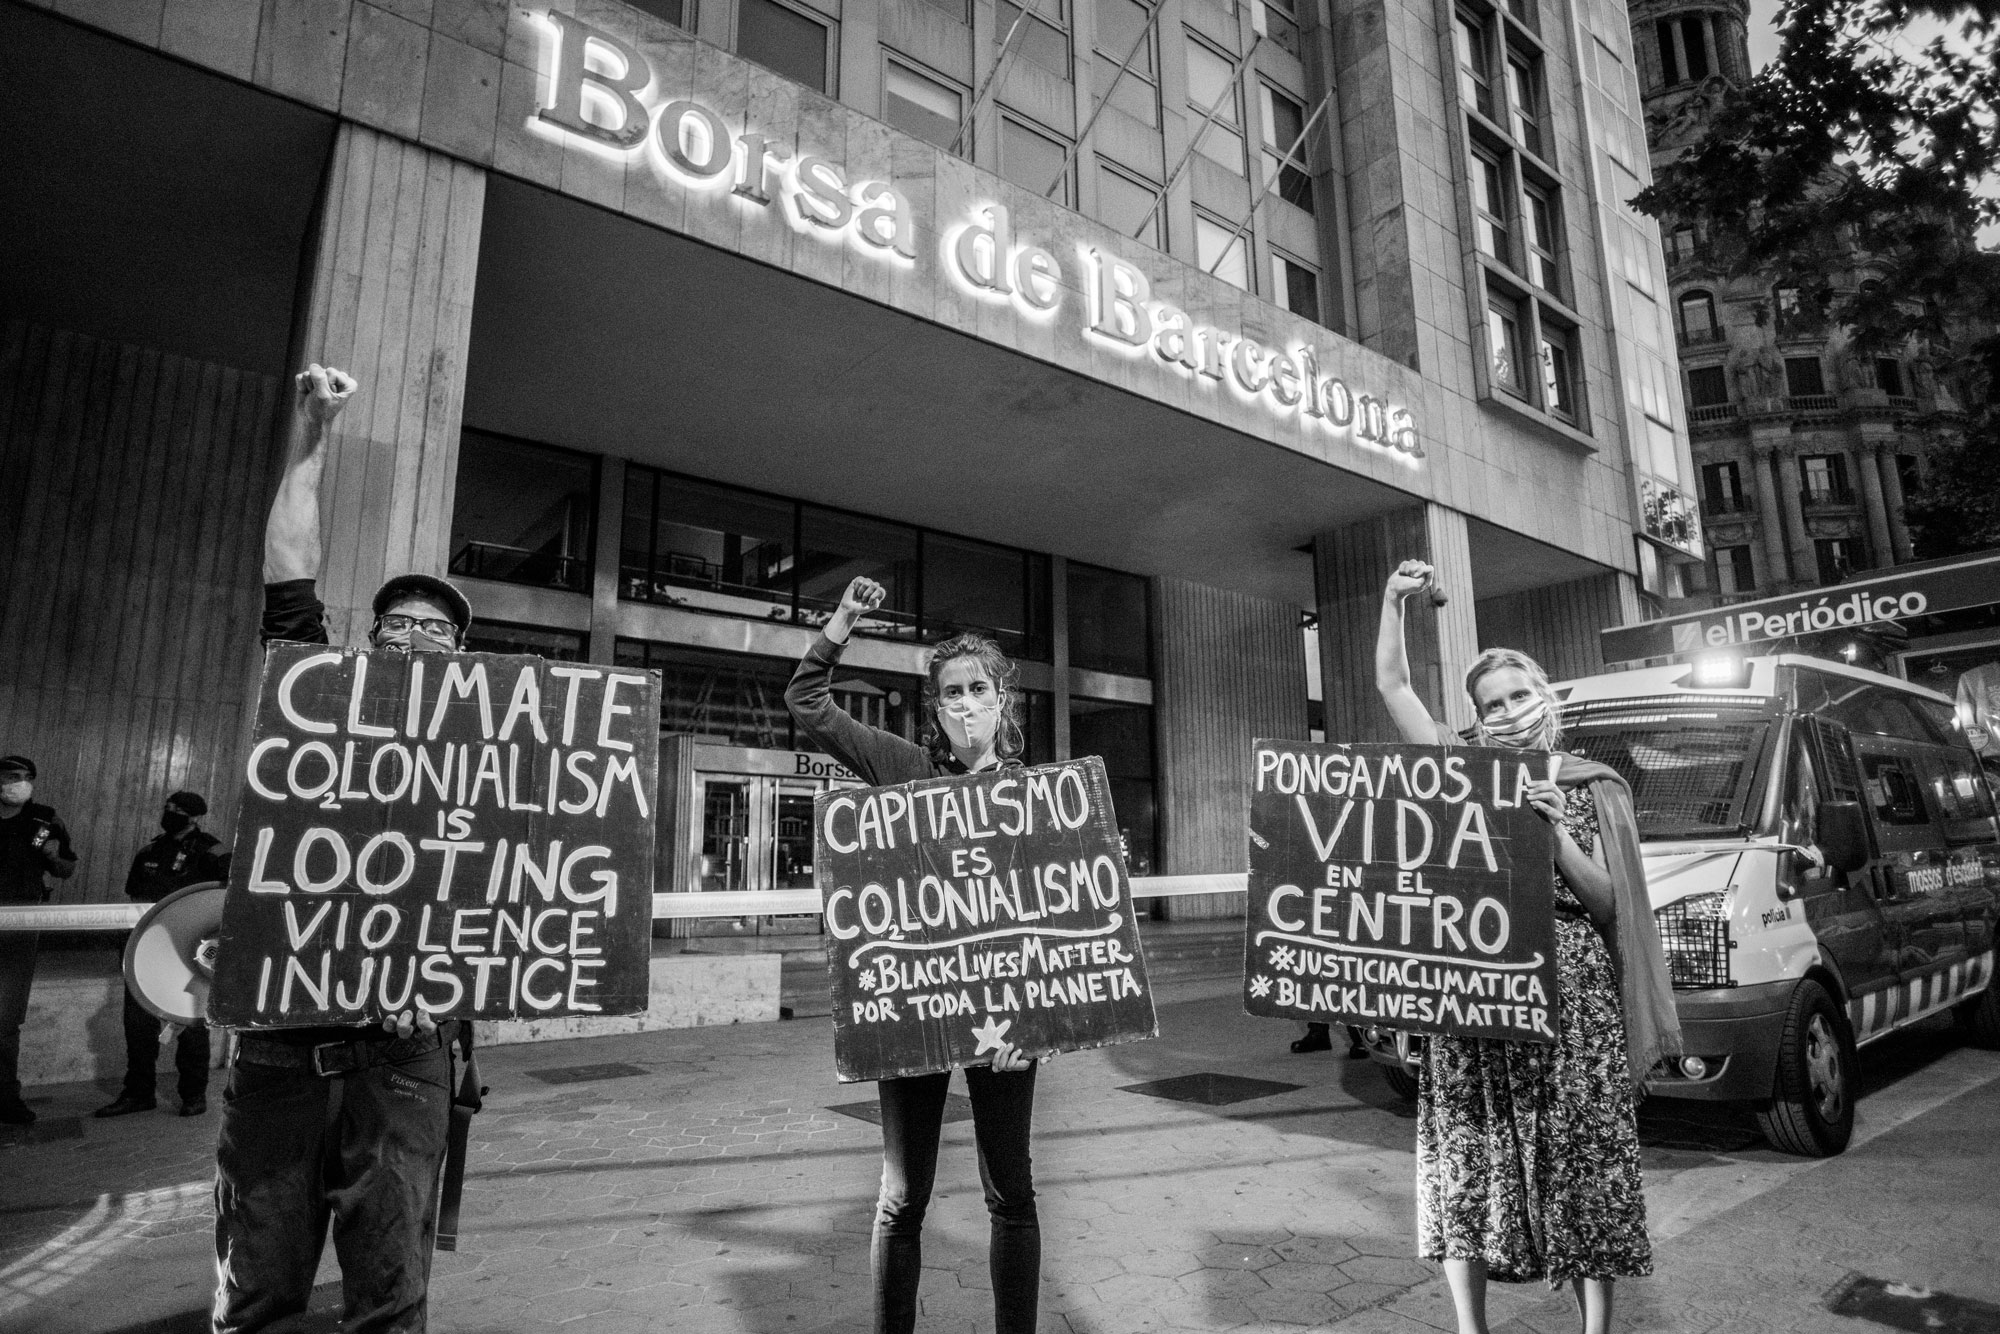 Rebels with posters in front of La Borsa de Barcelona during Environment Day